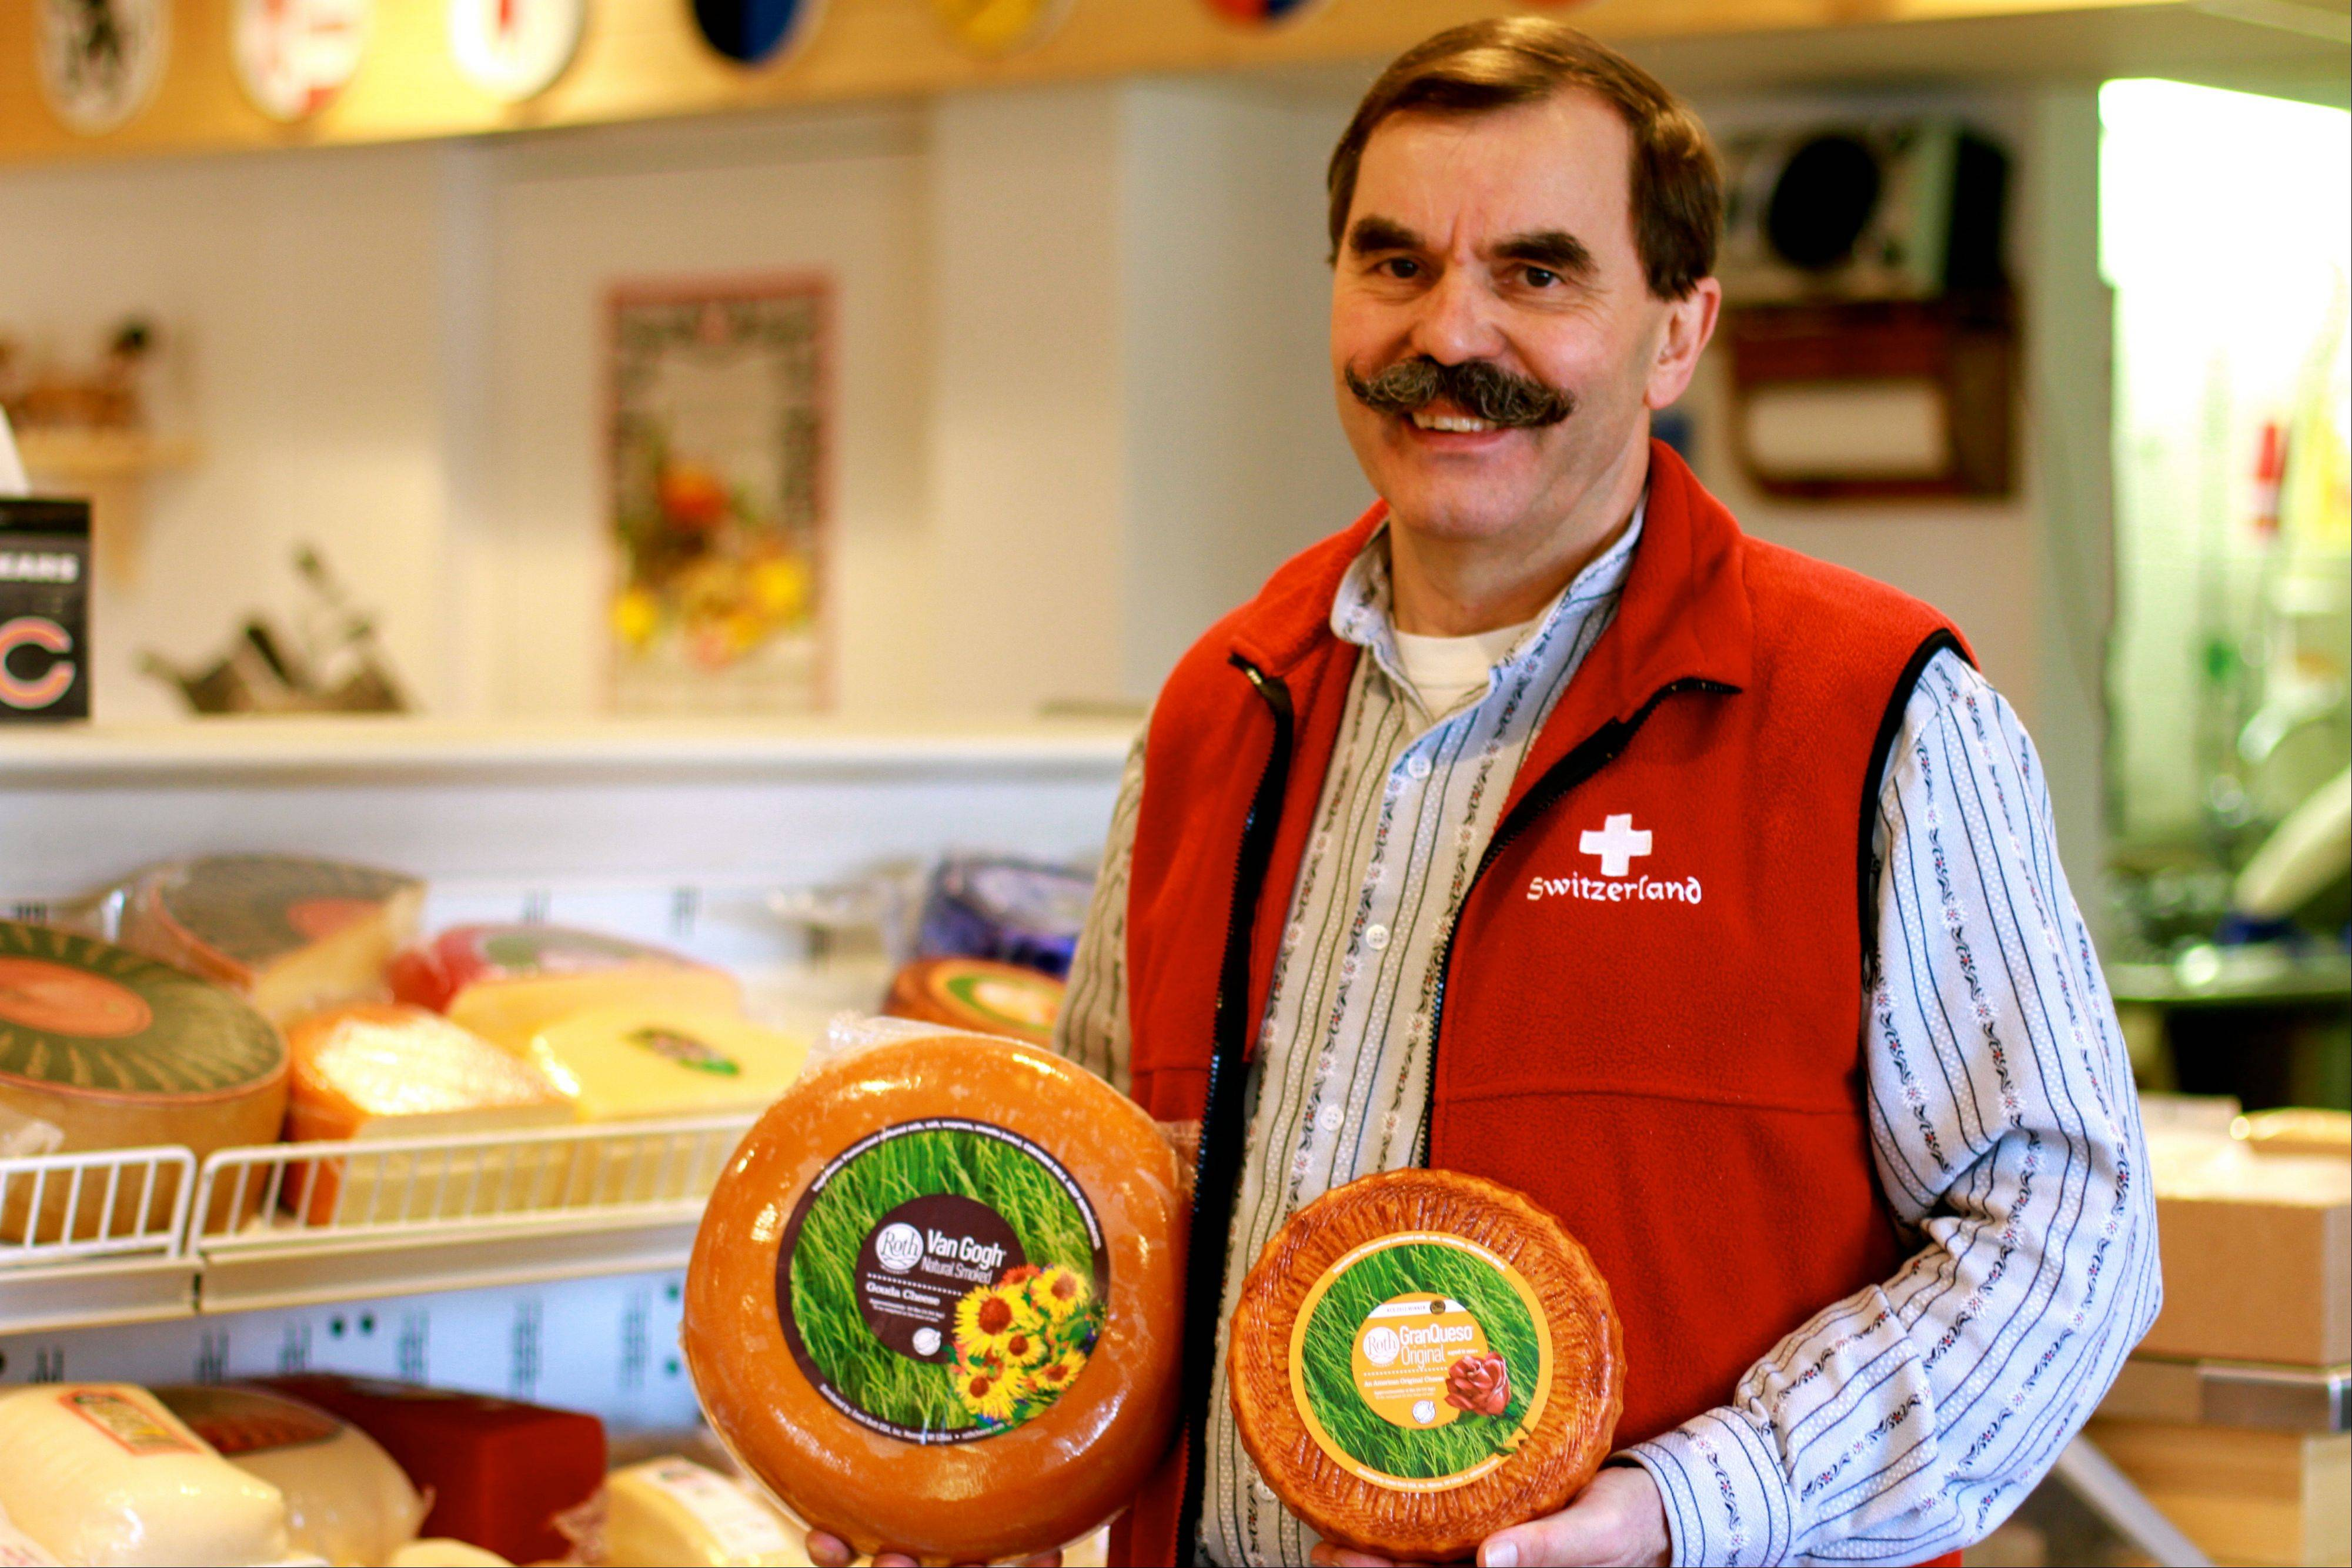 Owner Tony Zgraggen at the Alp and Dell artisanal cheese store in Monroe, Wis. The store is one of the few places in the area where Limburger cheese, famous for its smell, can be bought.